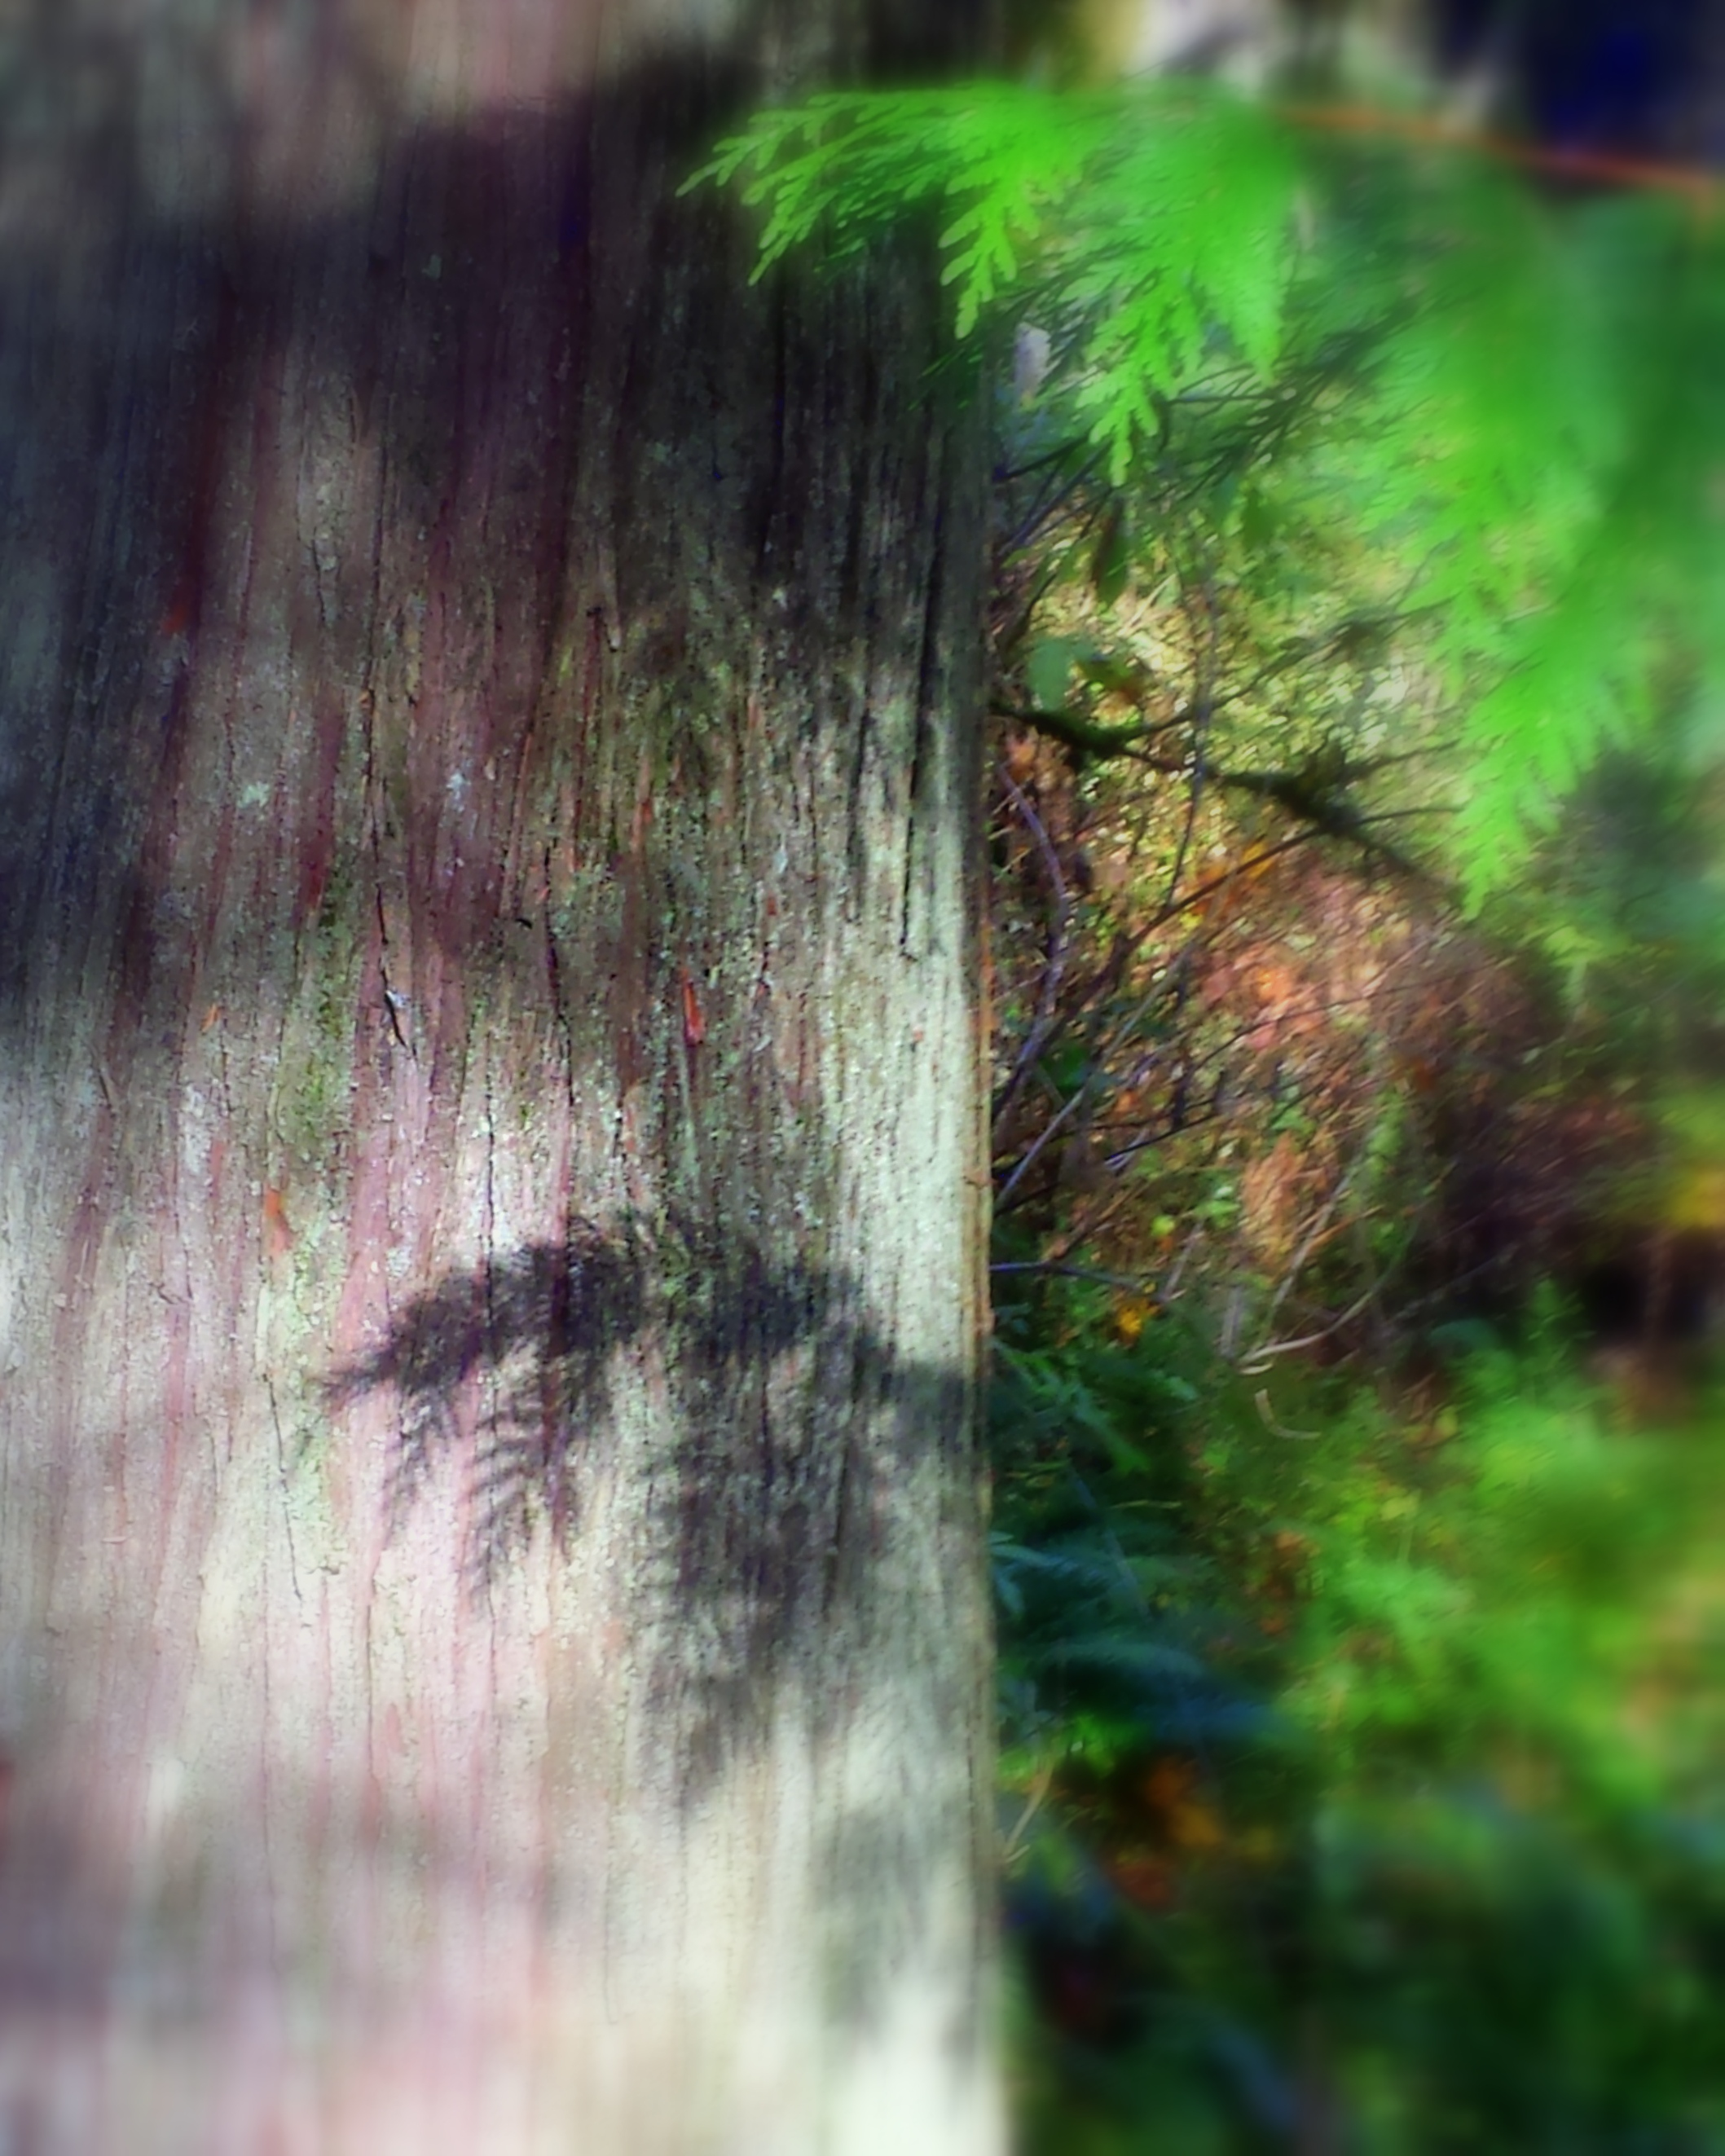 A limb Shadow on Tree trunk.